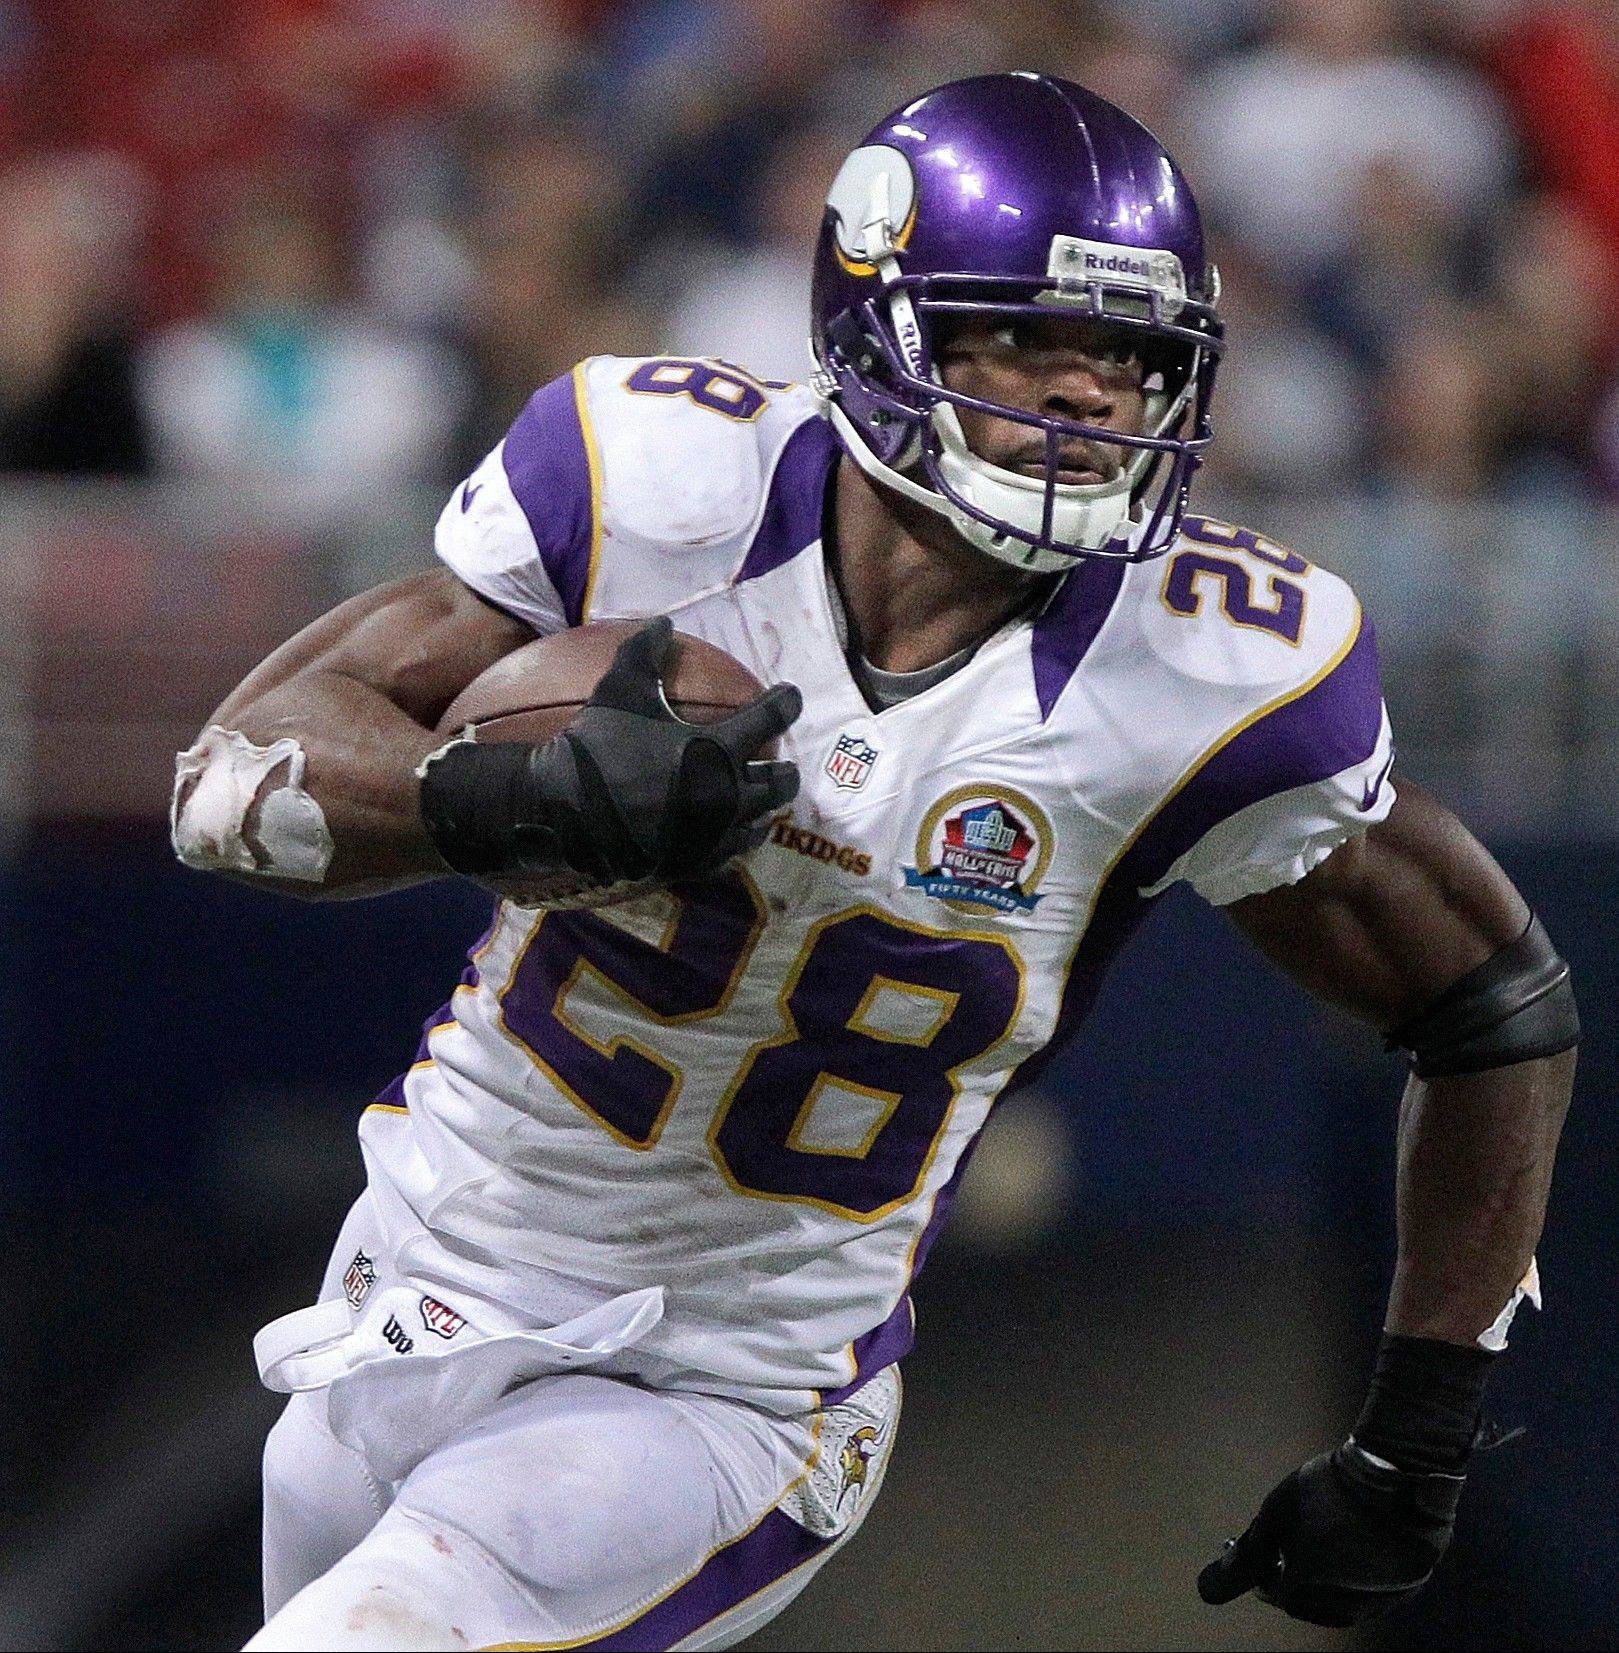 FILE - In this Dec. 16, 2012, file photo, Minnesota Vikings running back Adrian Peterson runs with the ball during the third quarter of an NFL football game against the St. Louis Rams in St. Louis. Peterson was selected to the Pro Bowl on Wednesday, Dec. 26, 2012. (AP Photo/Seth Perlman, File)